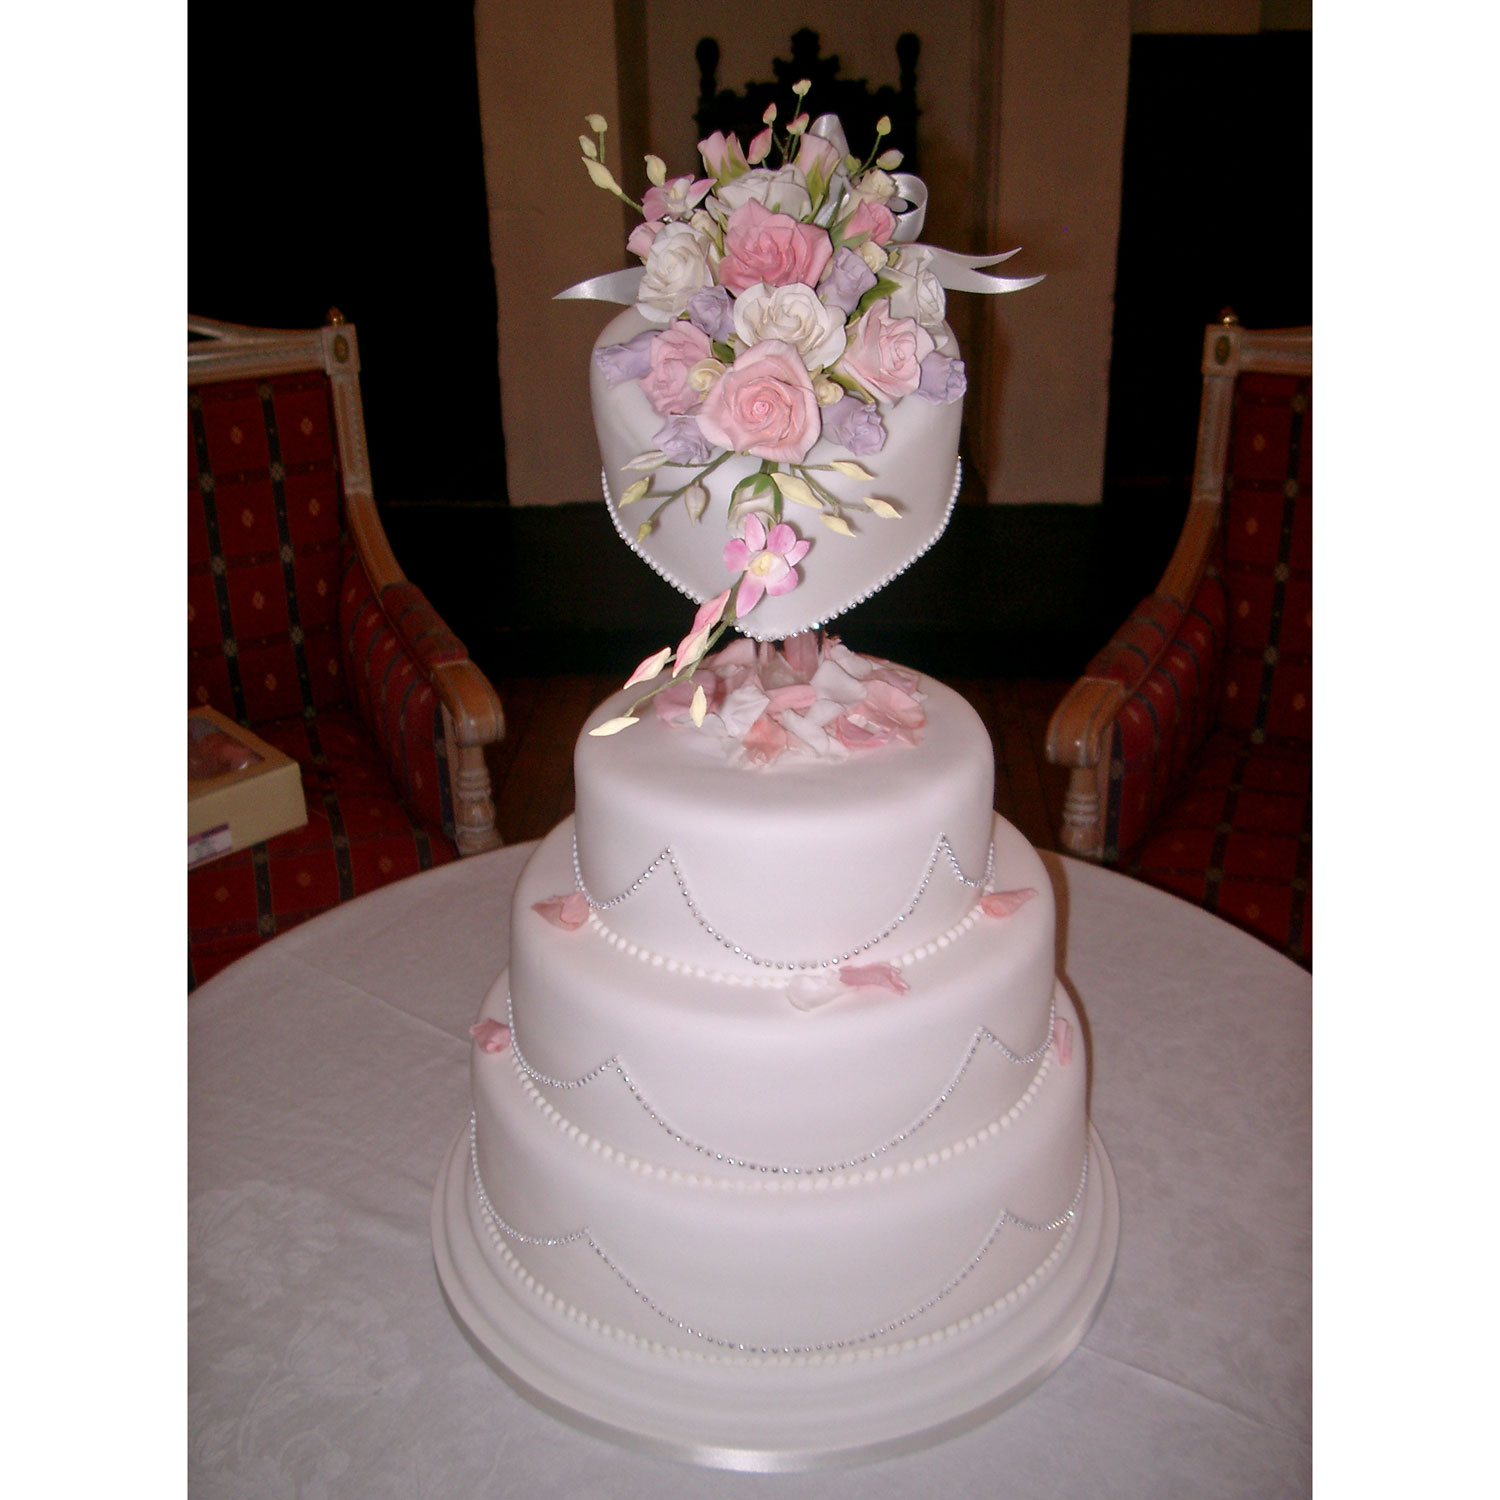 3 Tier Piped Dots And Diamante Wedding Cake: Floral Wedding Cakes Floral Wedding Cakes And Cakes With